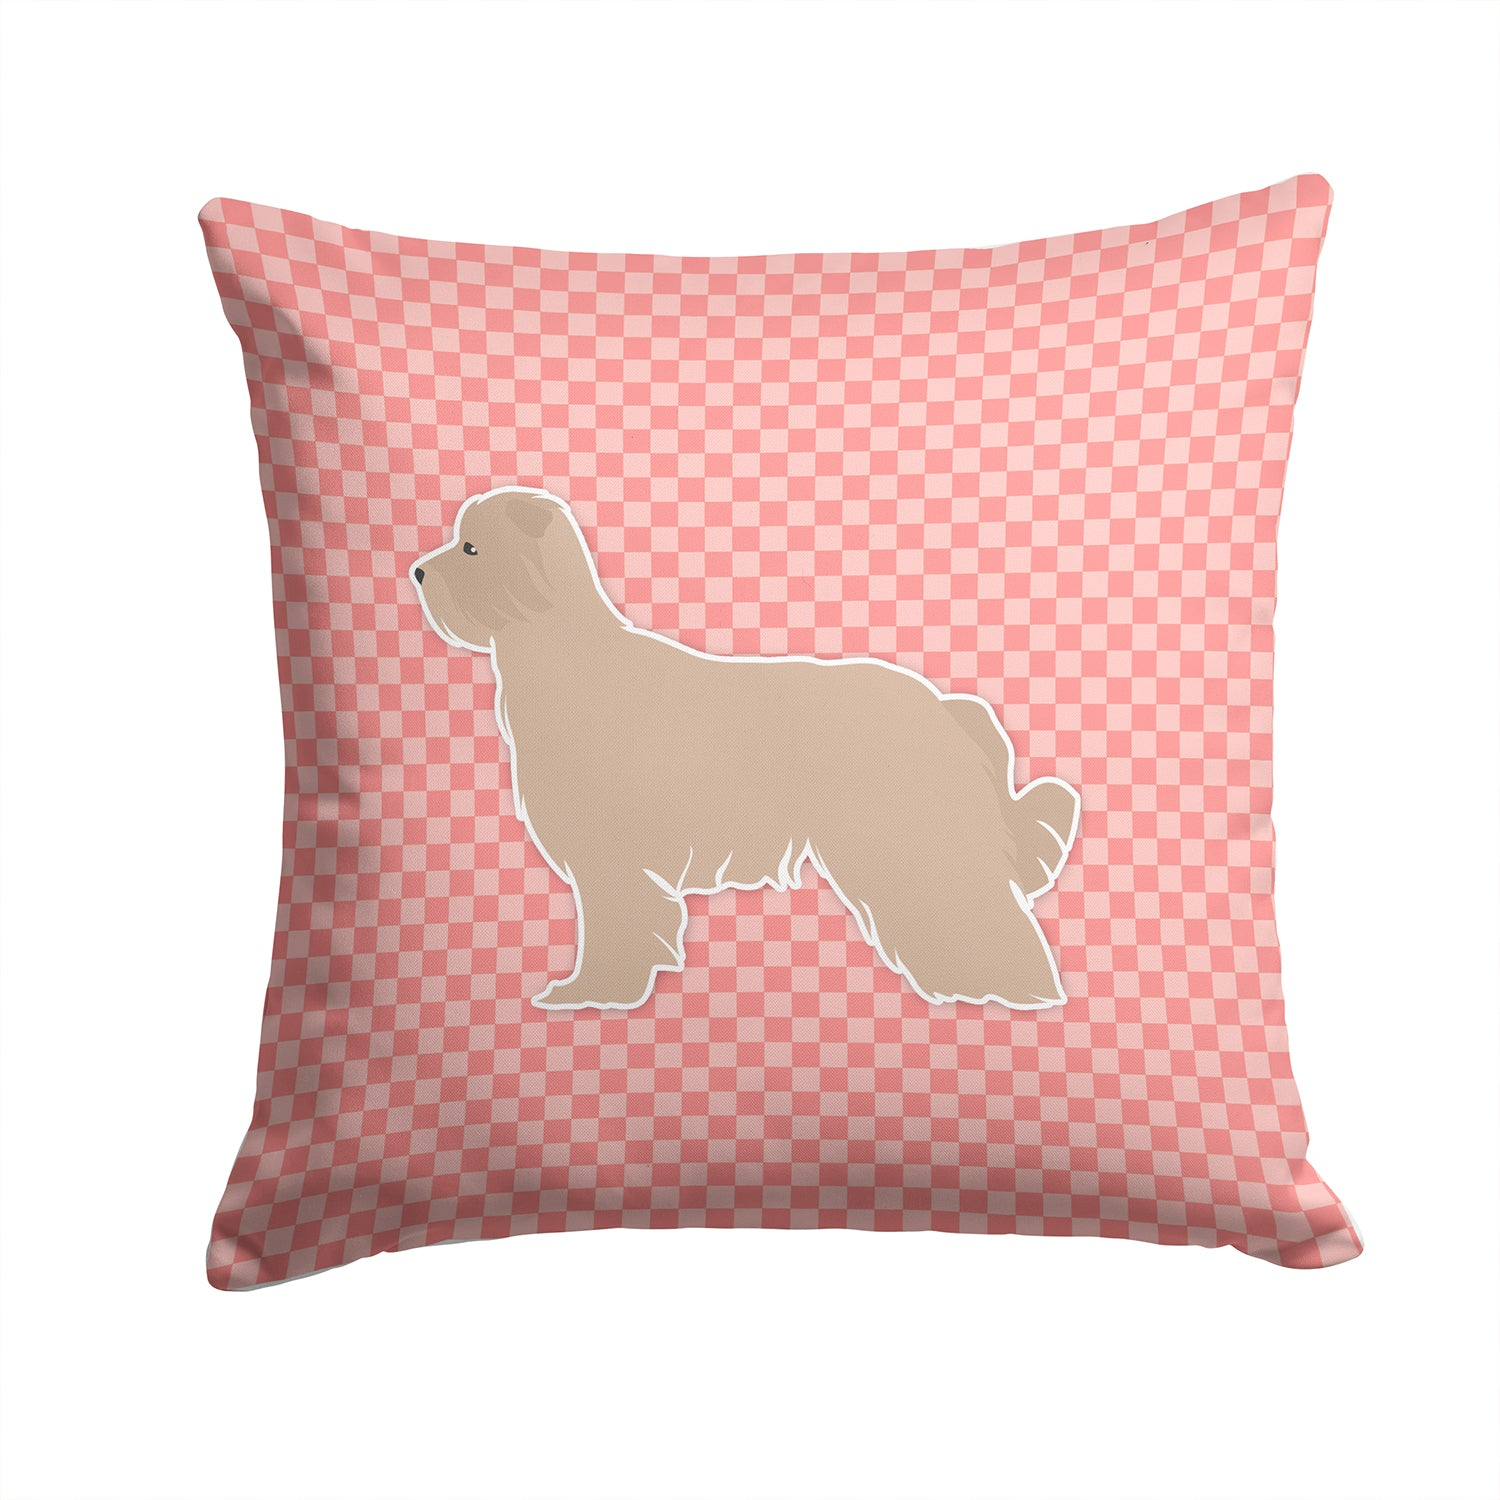 Pyrenean Shepherd Checkerboard Pink Fabric Decorative Pillow BB3618PW1414 by Caroline's Treasures